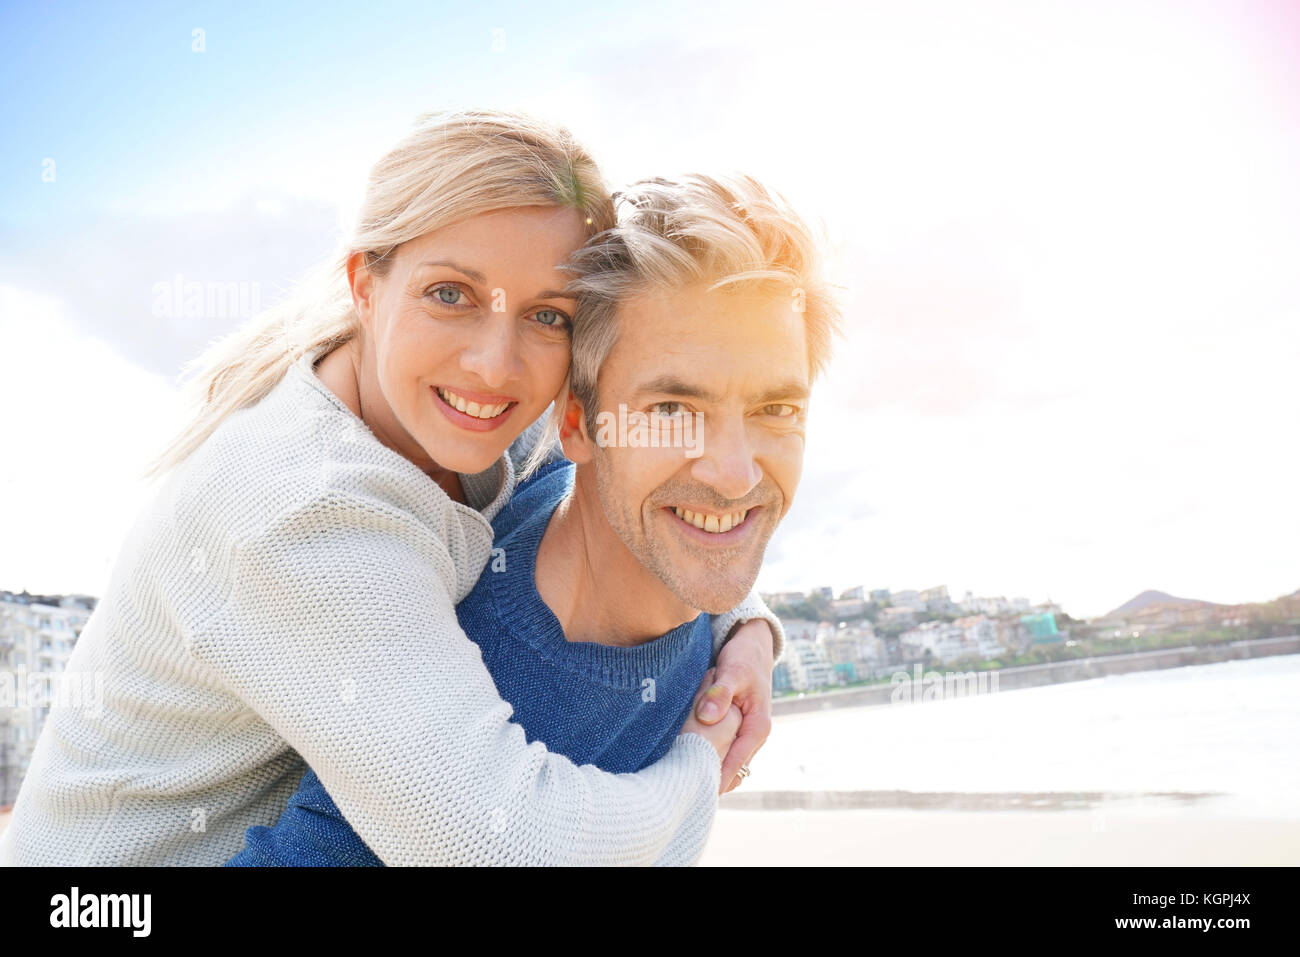 Man giving piggyback ride to woman at the beach Photo Stock